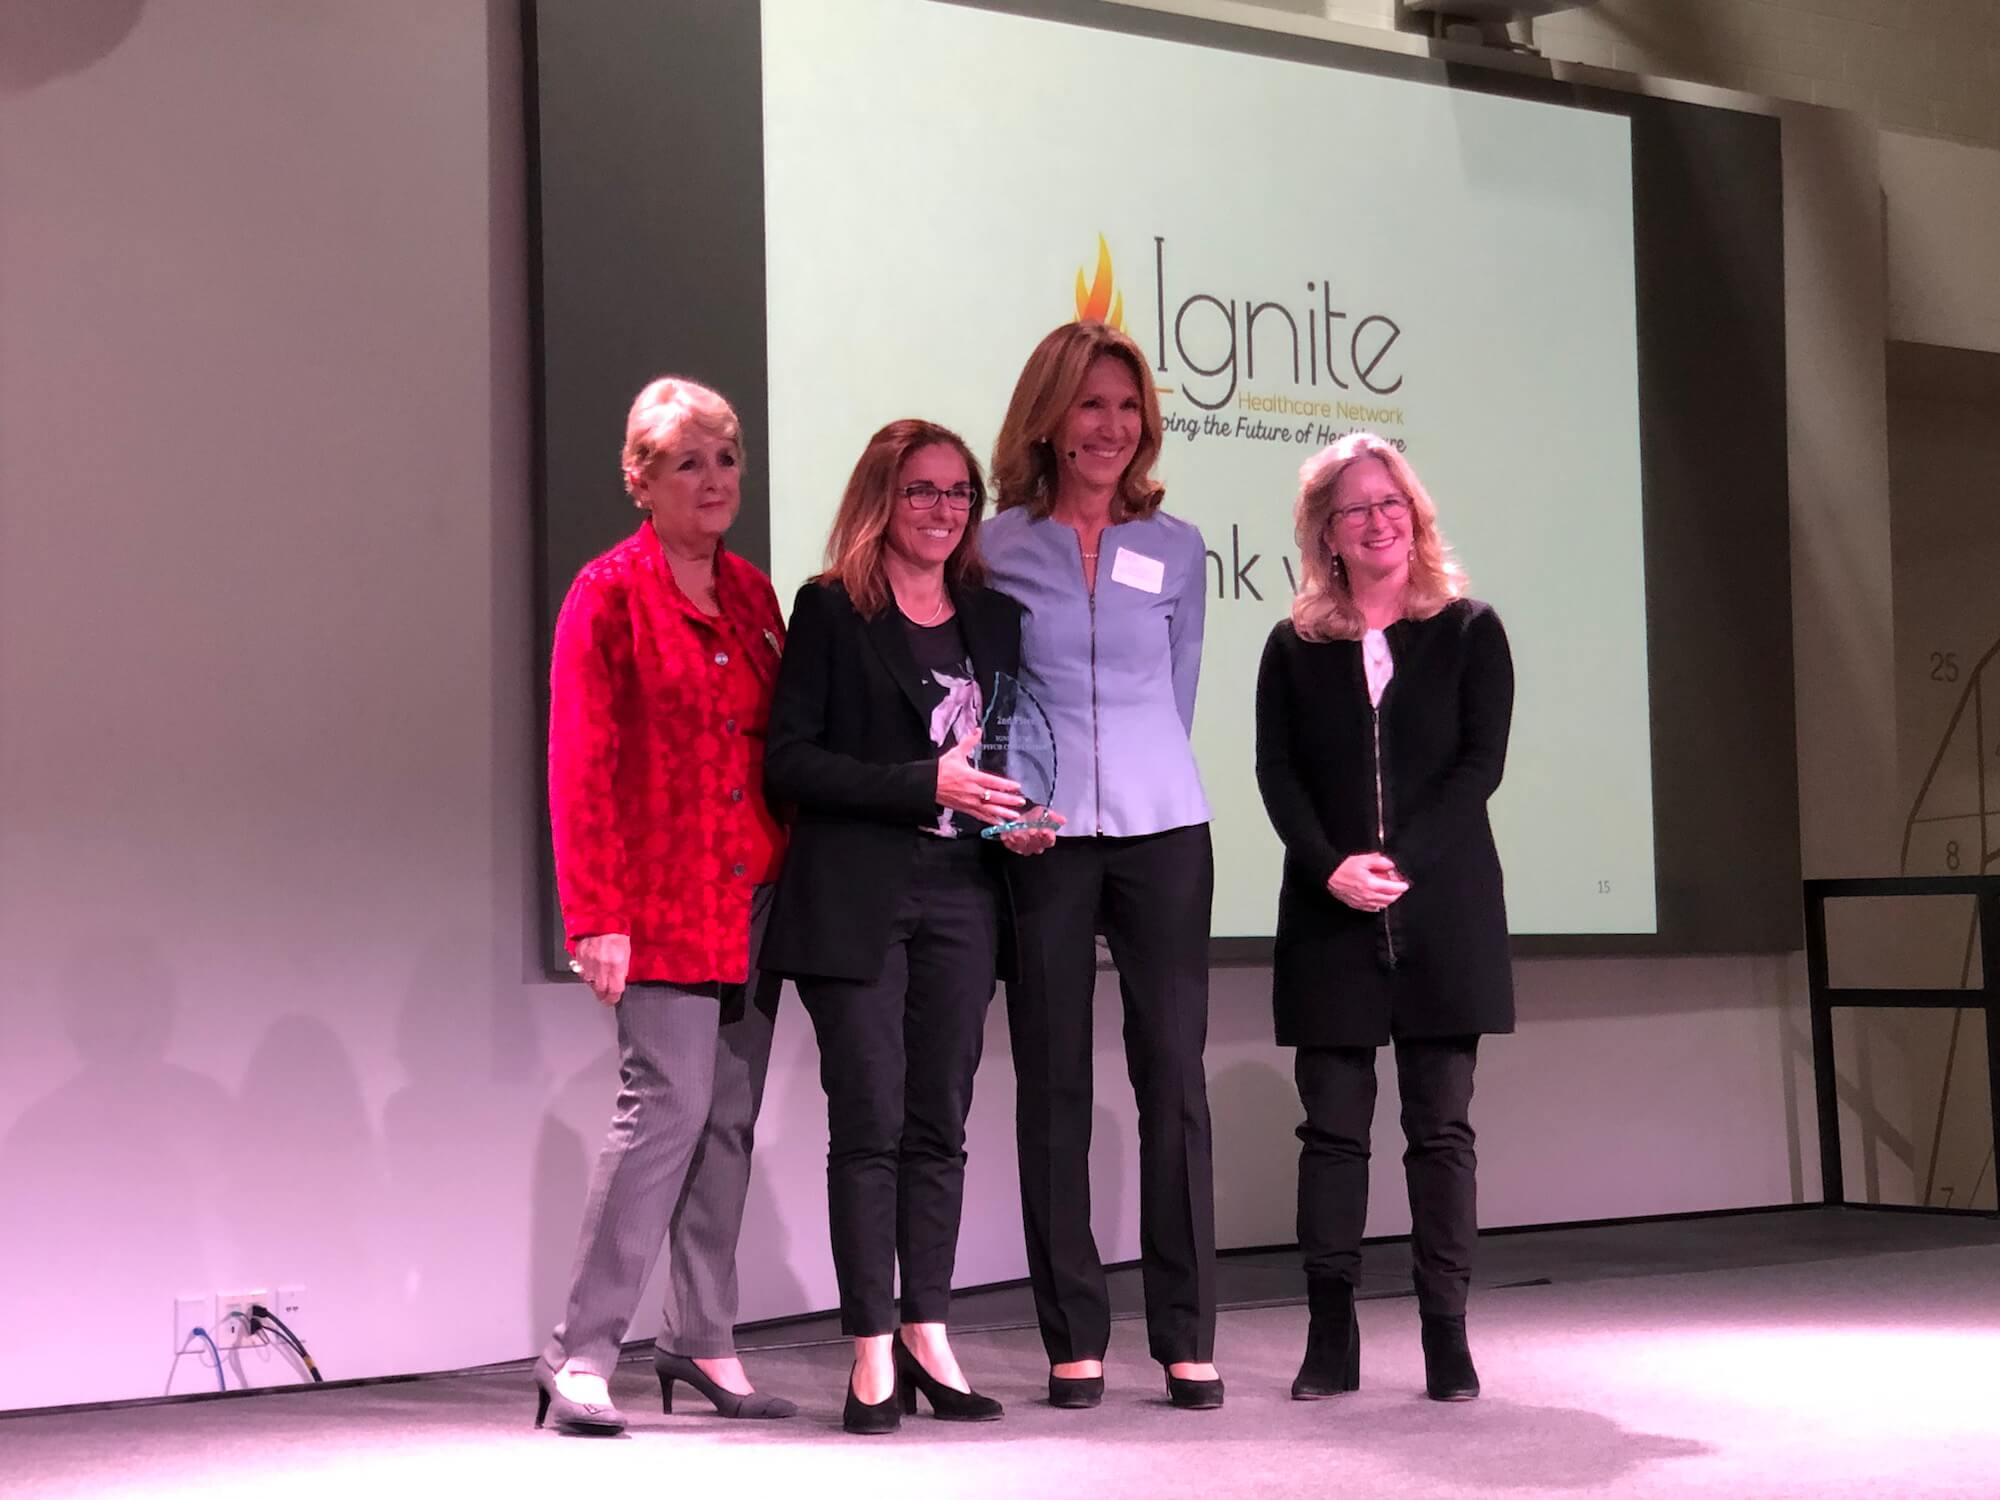 From left to right: Cheryl Stavins, Ignite board member and event co-chair; Carolyn Mee, founder and CEO of Sound Scouts and second-place winner of the Third Annual Fire Pitch Competition; Ayse McCracken, Ignite founder; and Patricia Gail Bray, Ph.D., Ignite board member and founding director of the BridgeUp Center at The Menninger Clinic.